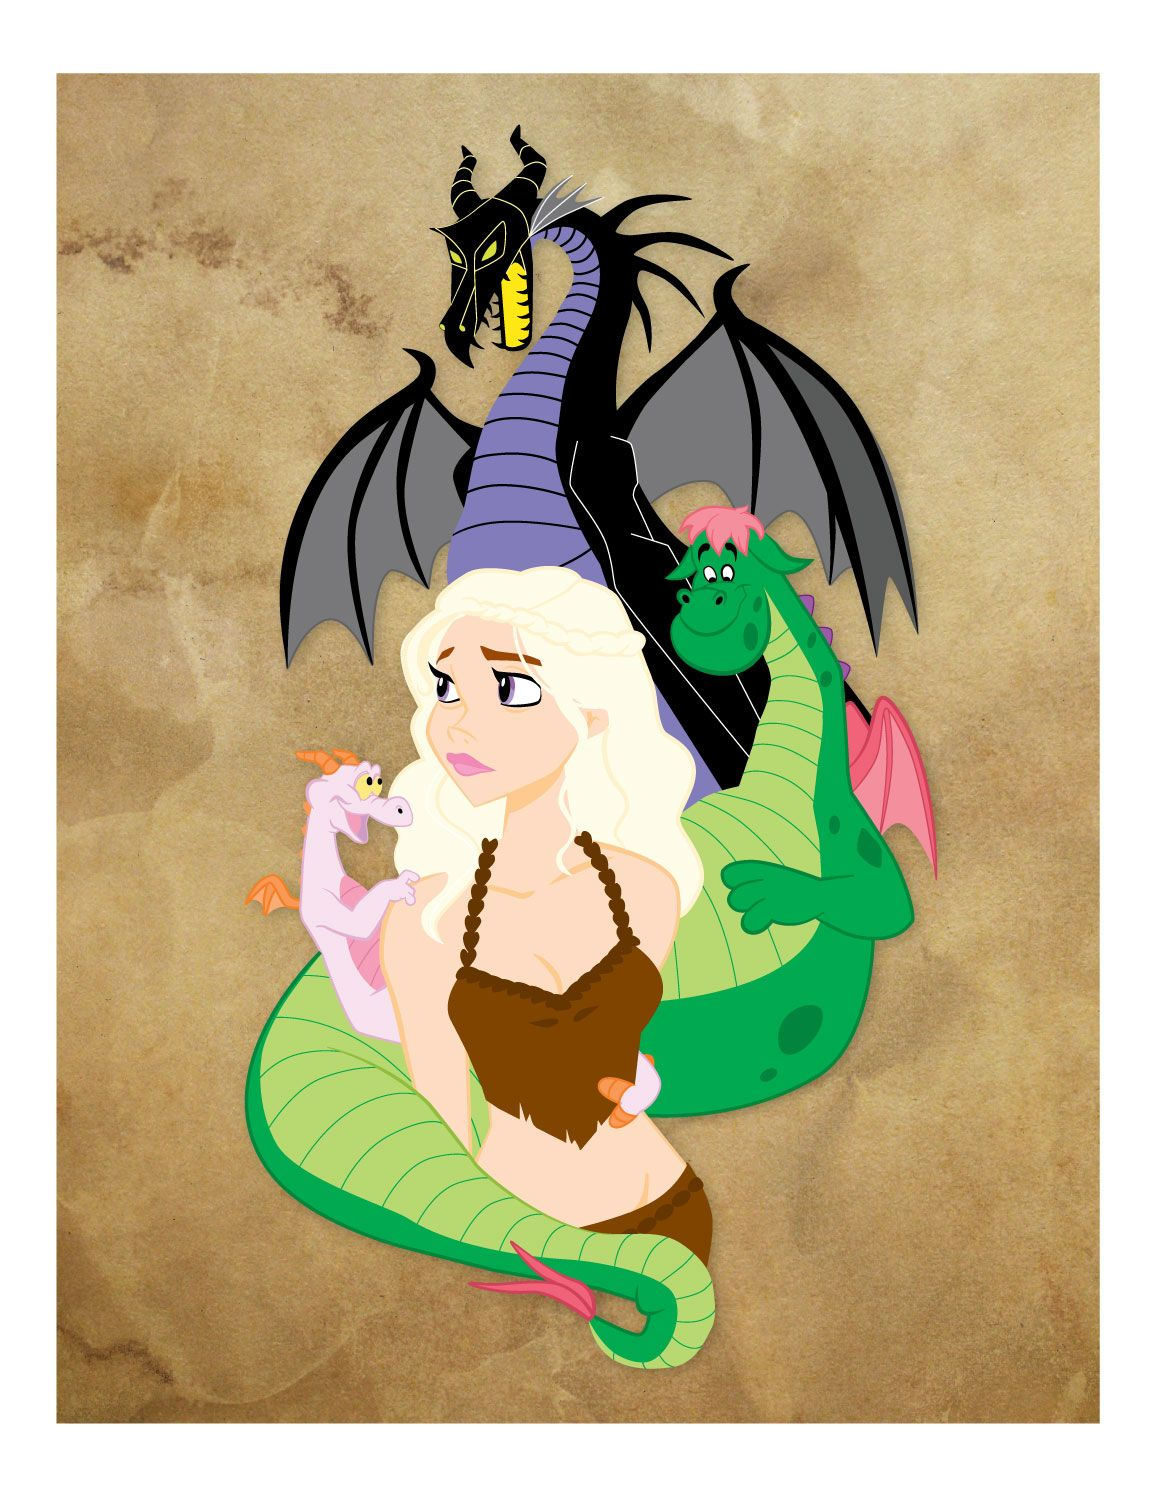 The Mother of Dragons, Game of Thrones image by Mona Collentine.